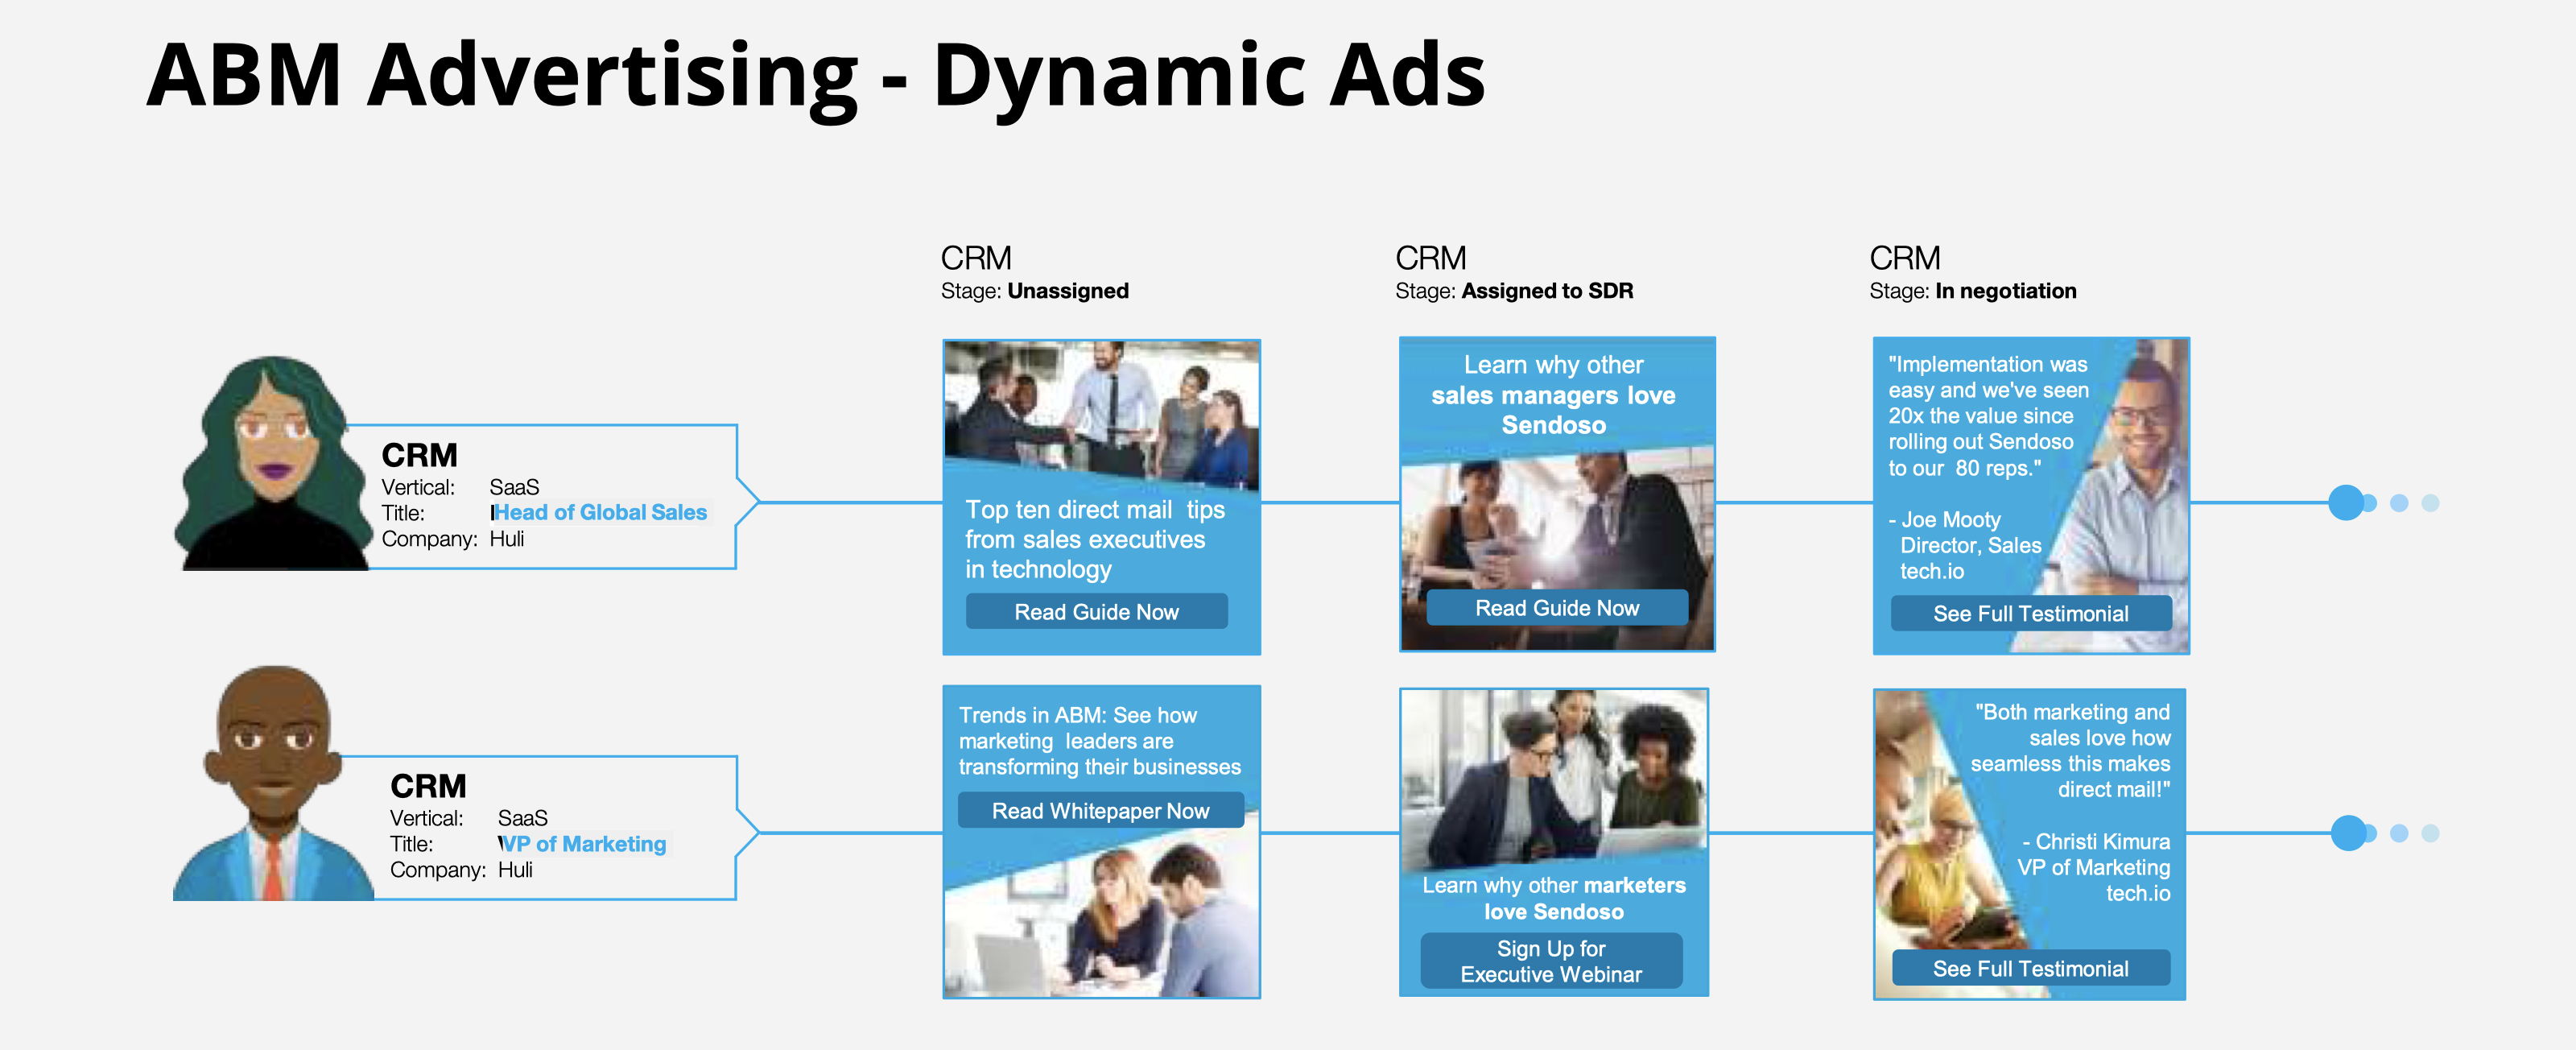 abm advertising dynamic ads